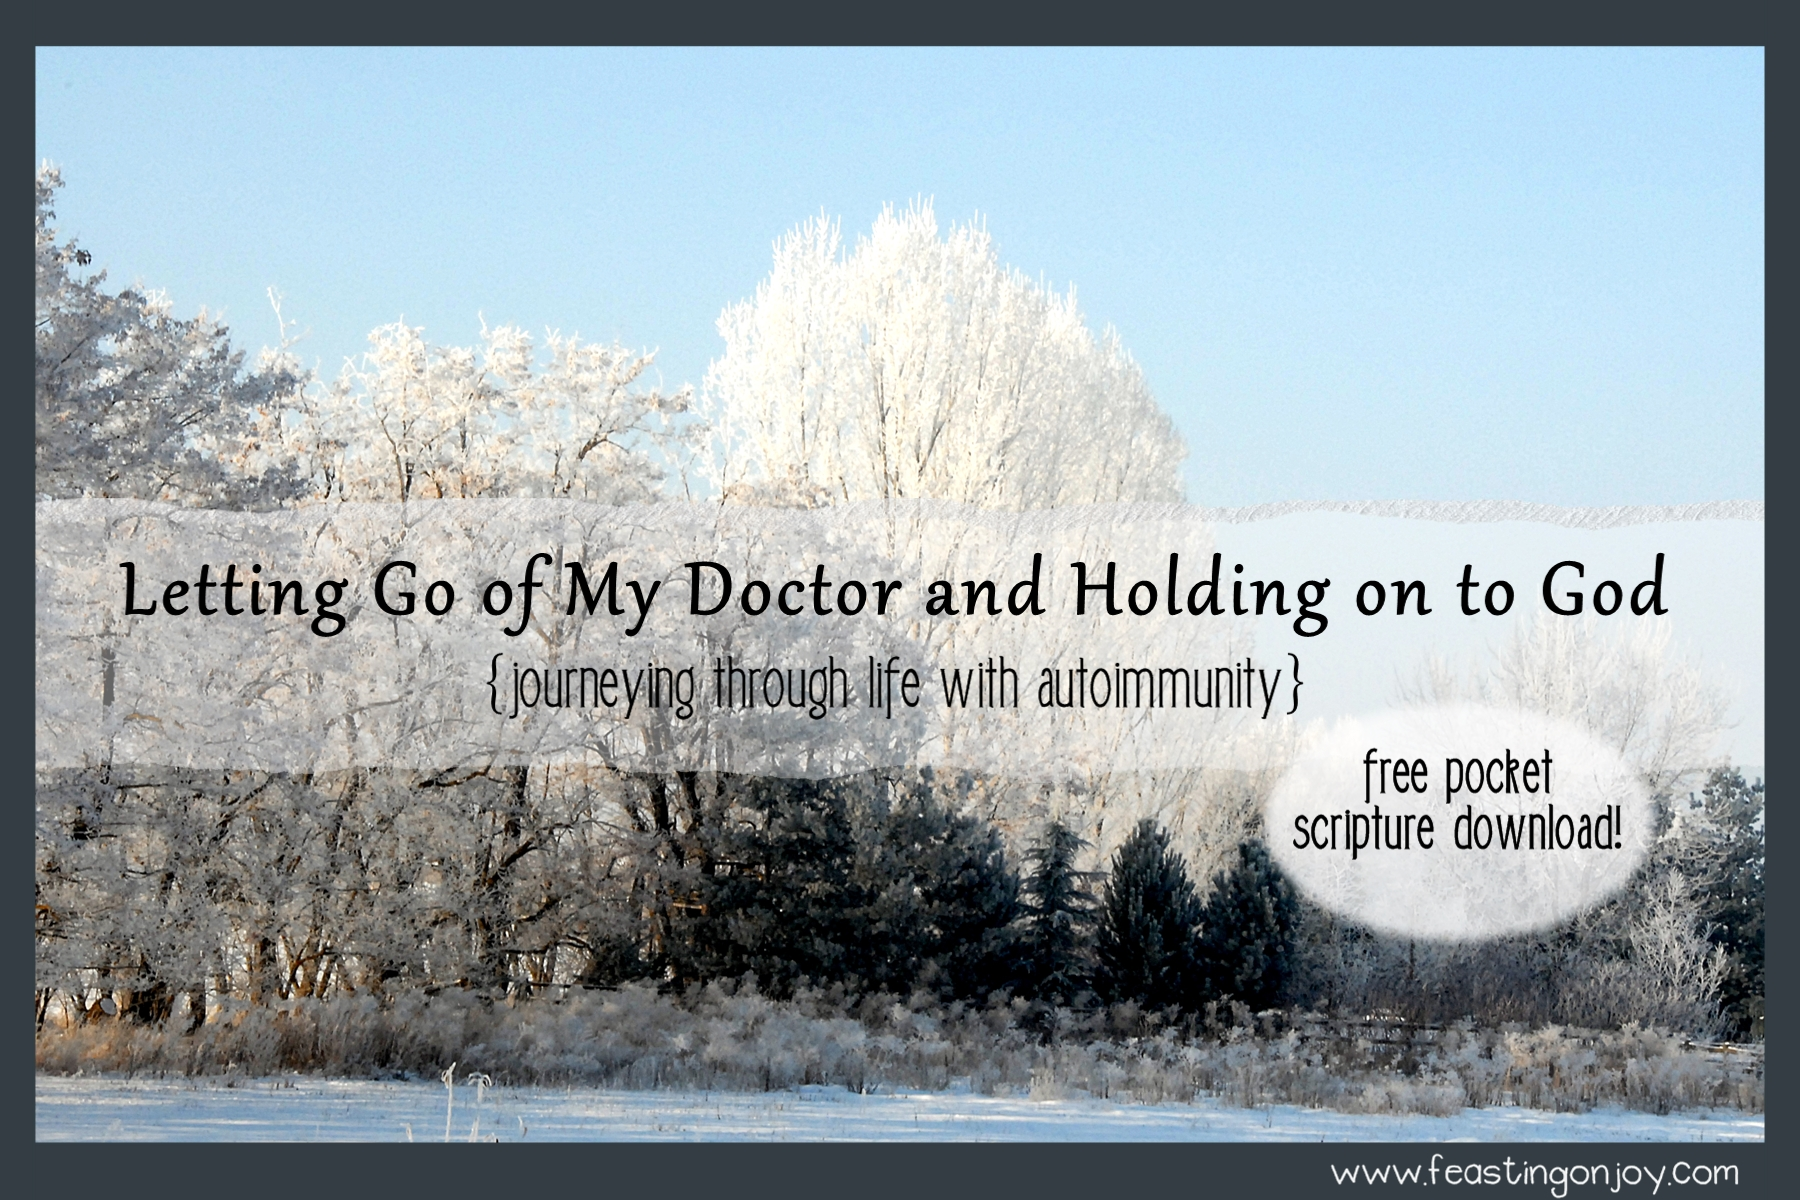 Letting Go of My Doctor and Holding on to God {journeying through life with autoimmunity}